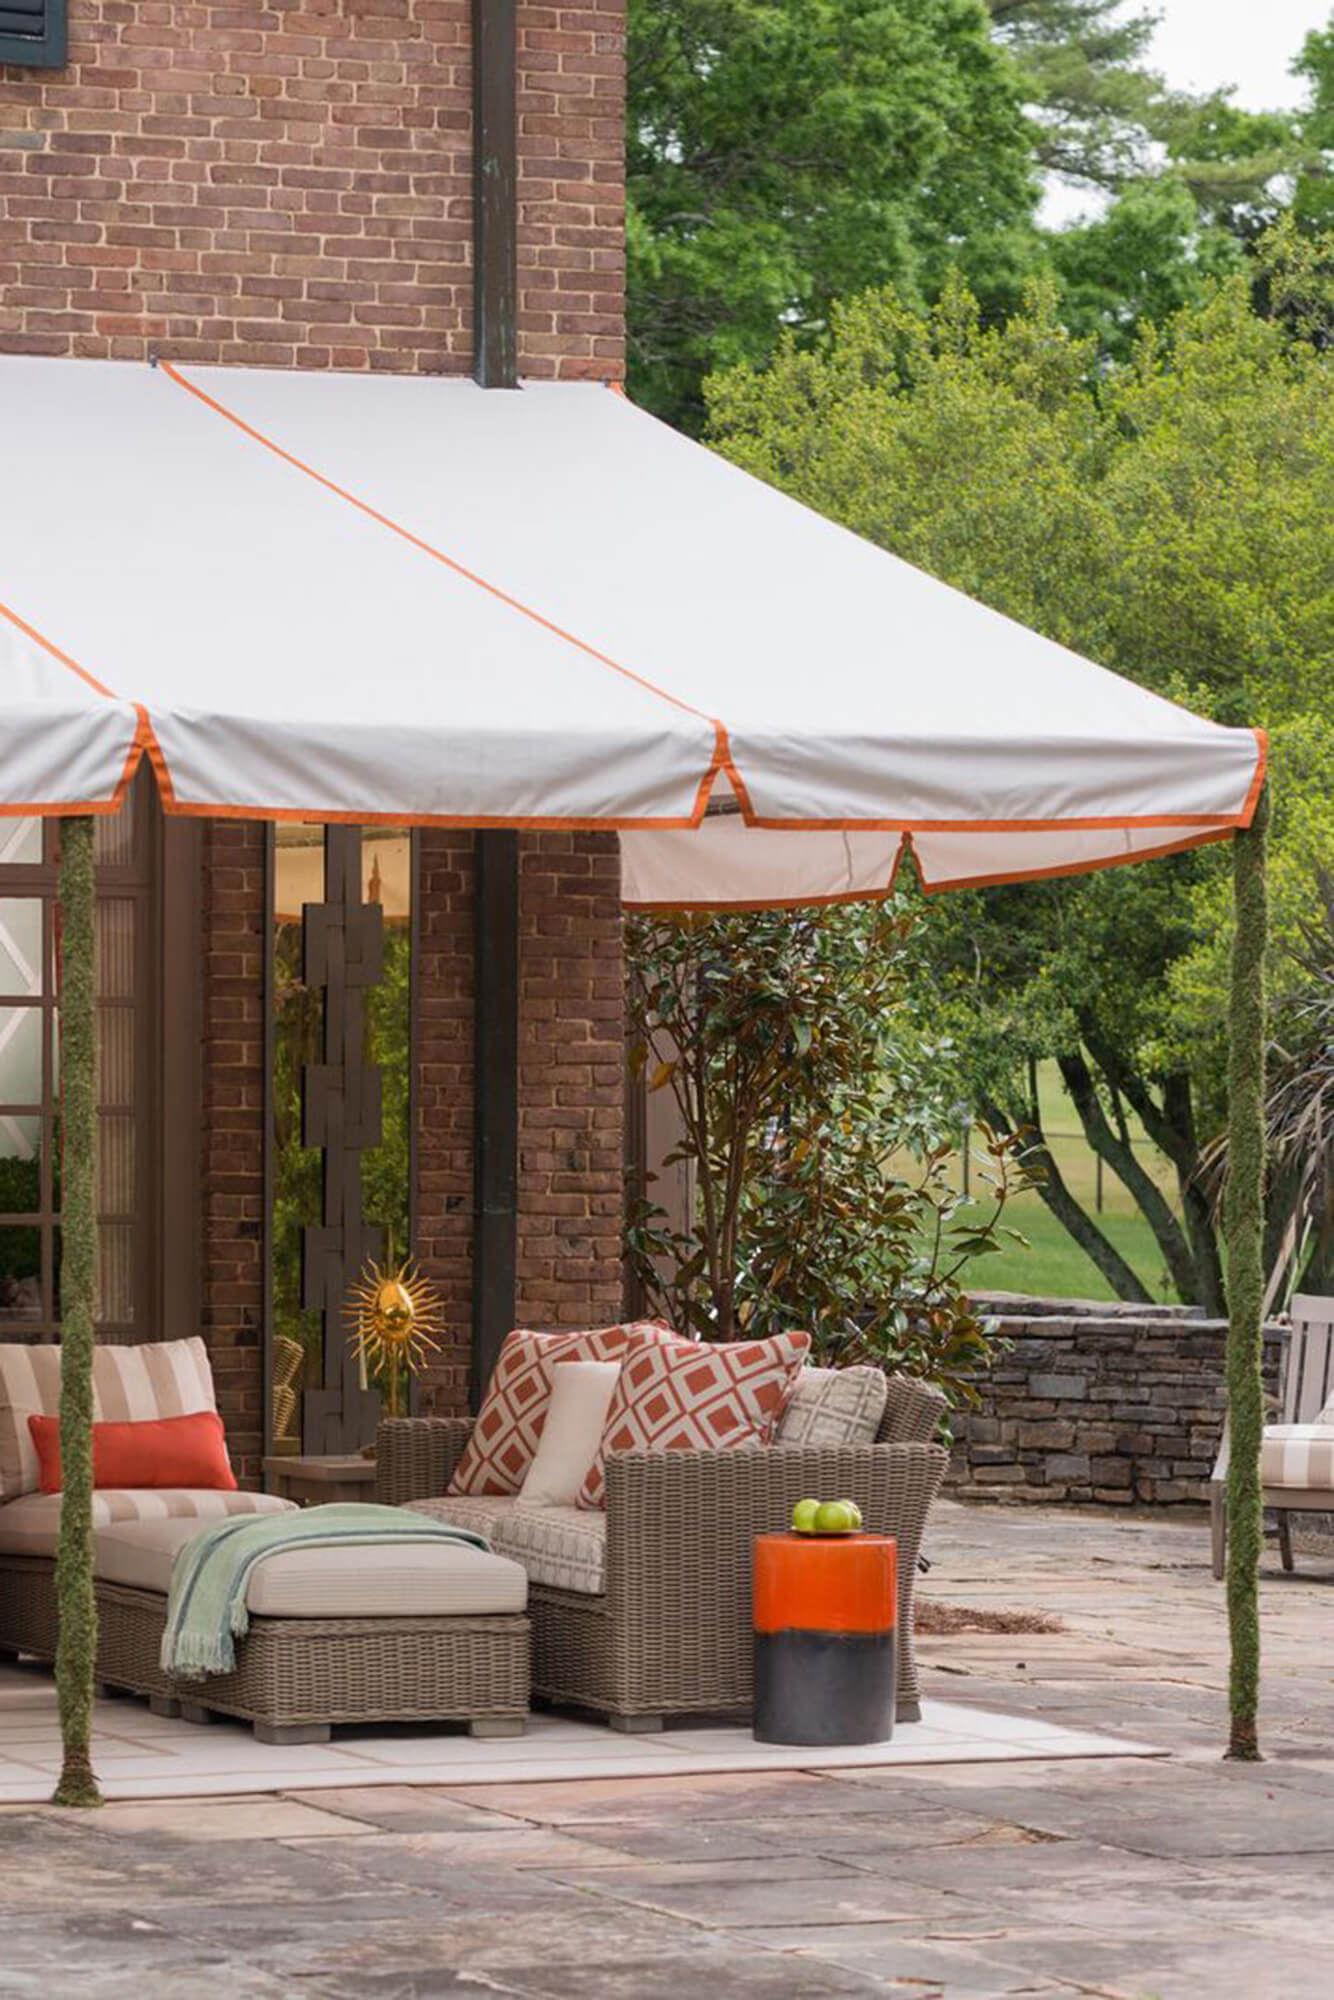 Patio coved with a fixed frame awning with white Sunbrella fabric and orange detailing